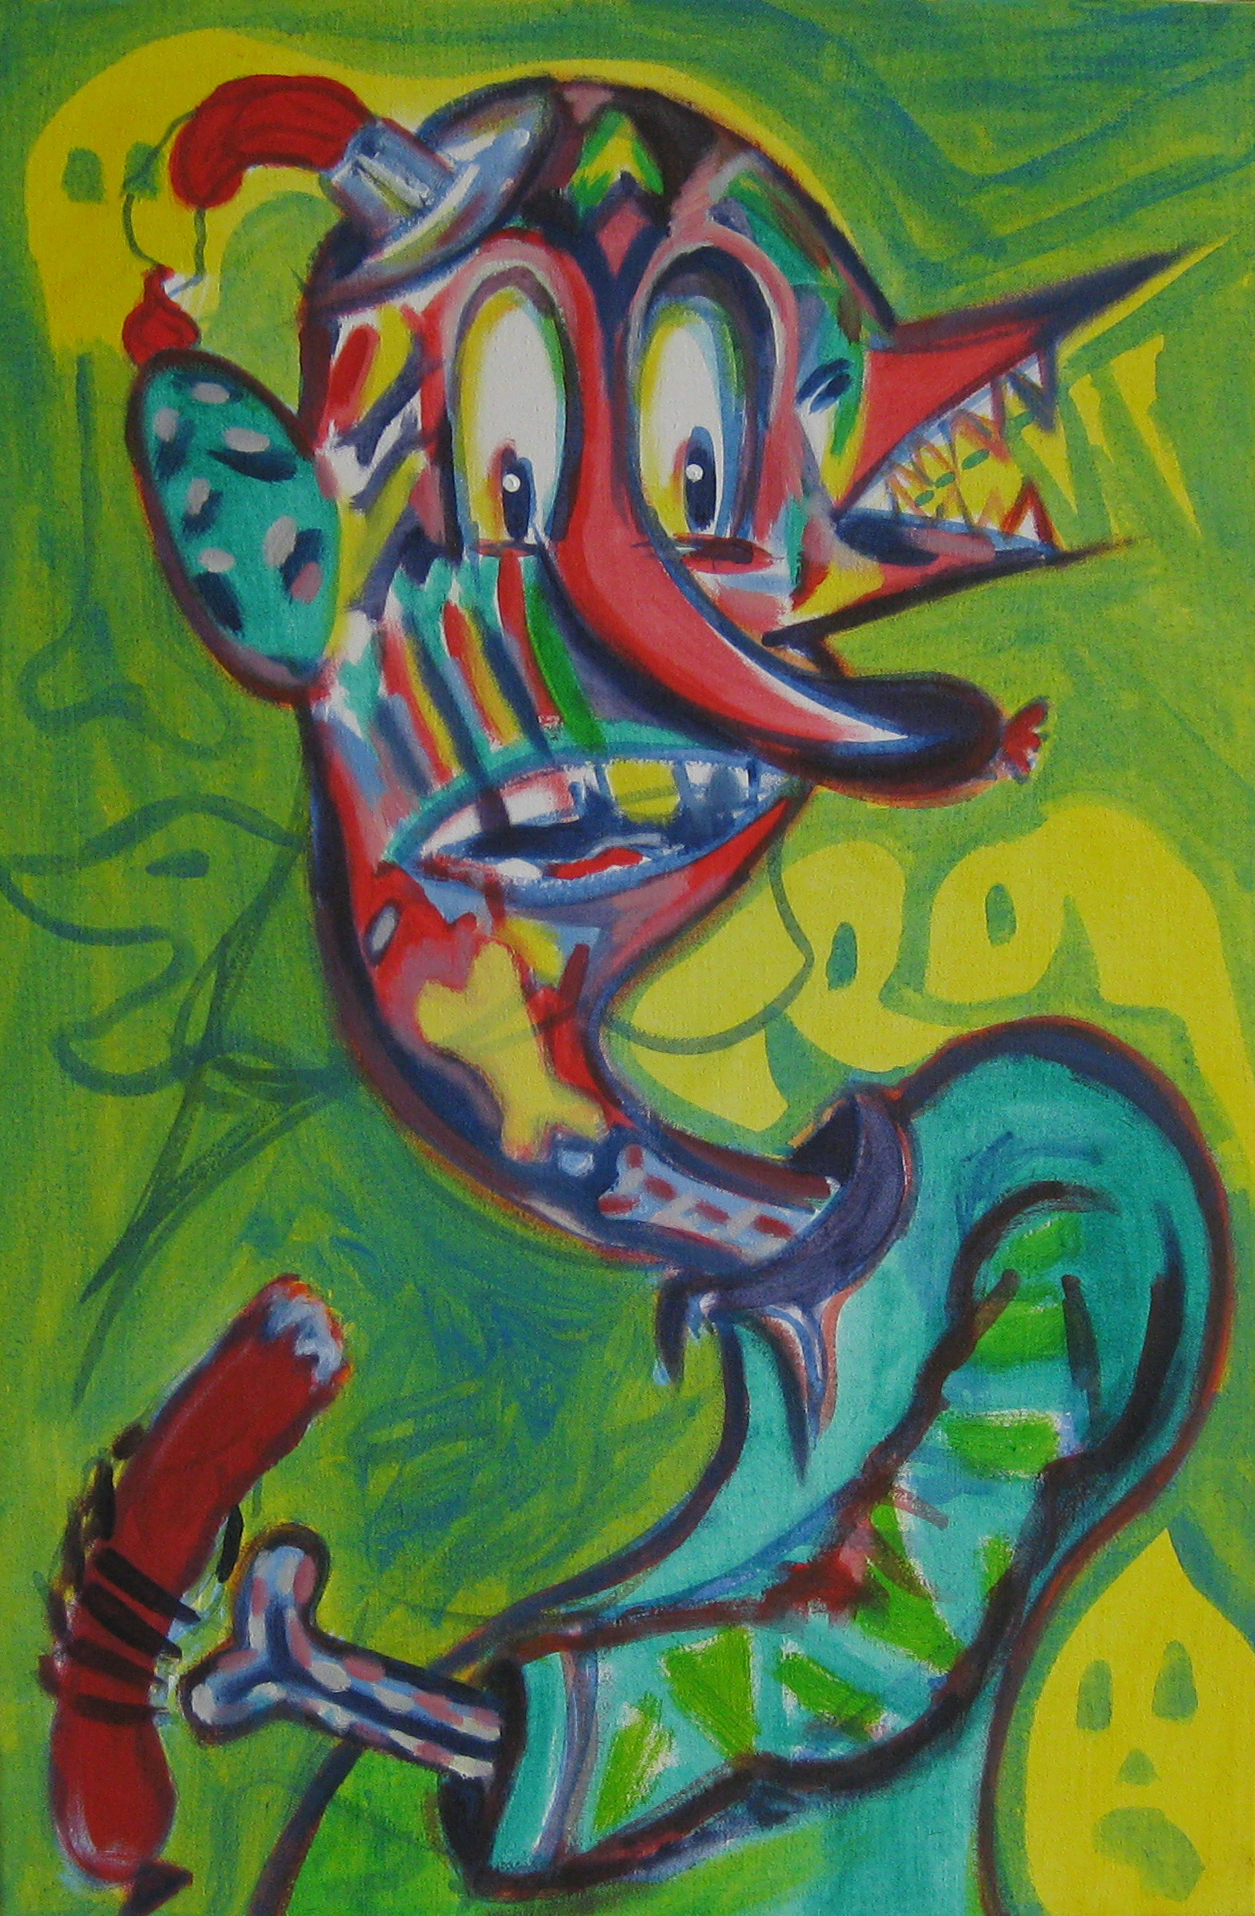 Canibalic Wanker  40 x 60  Acrylic on canvas